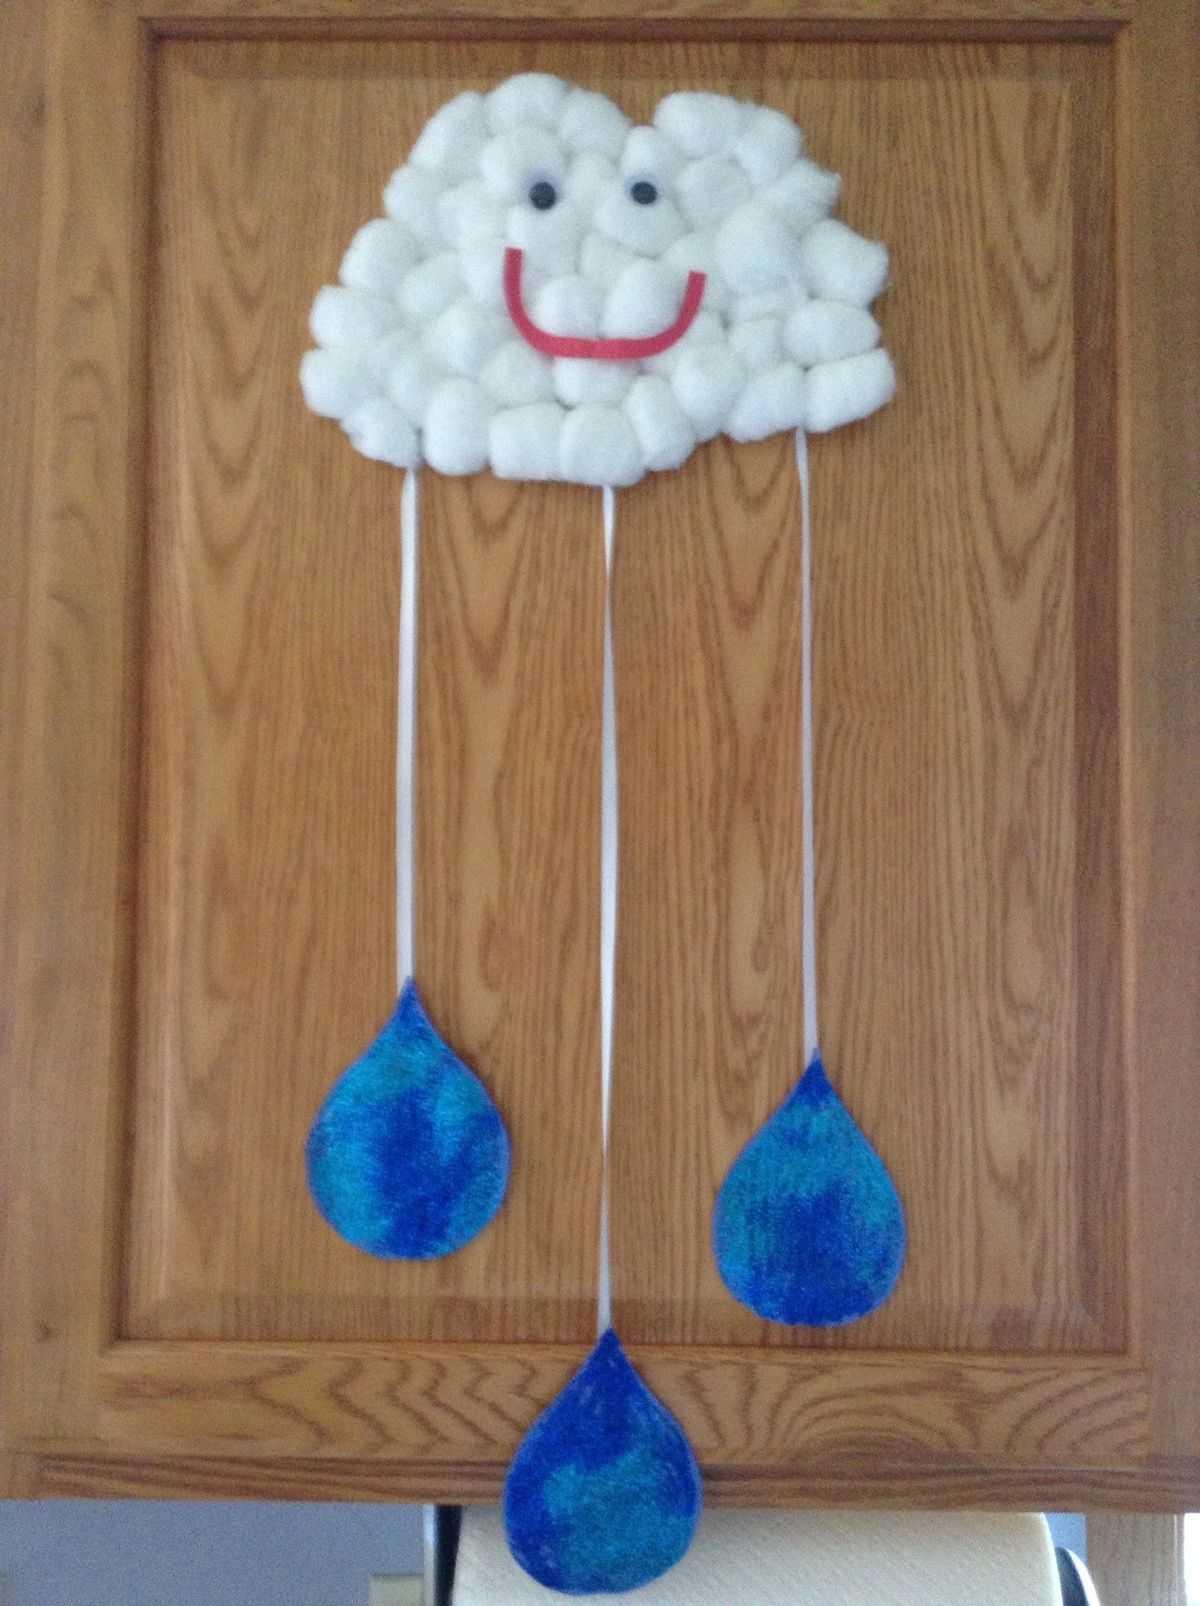 Cotton Ball Cloud And Rain Drops We Will Make A Few More Raindrops And Write Describing Words